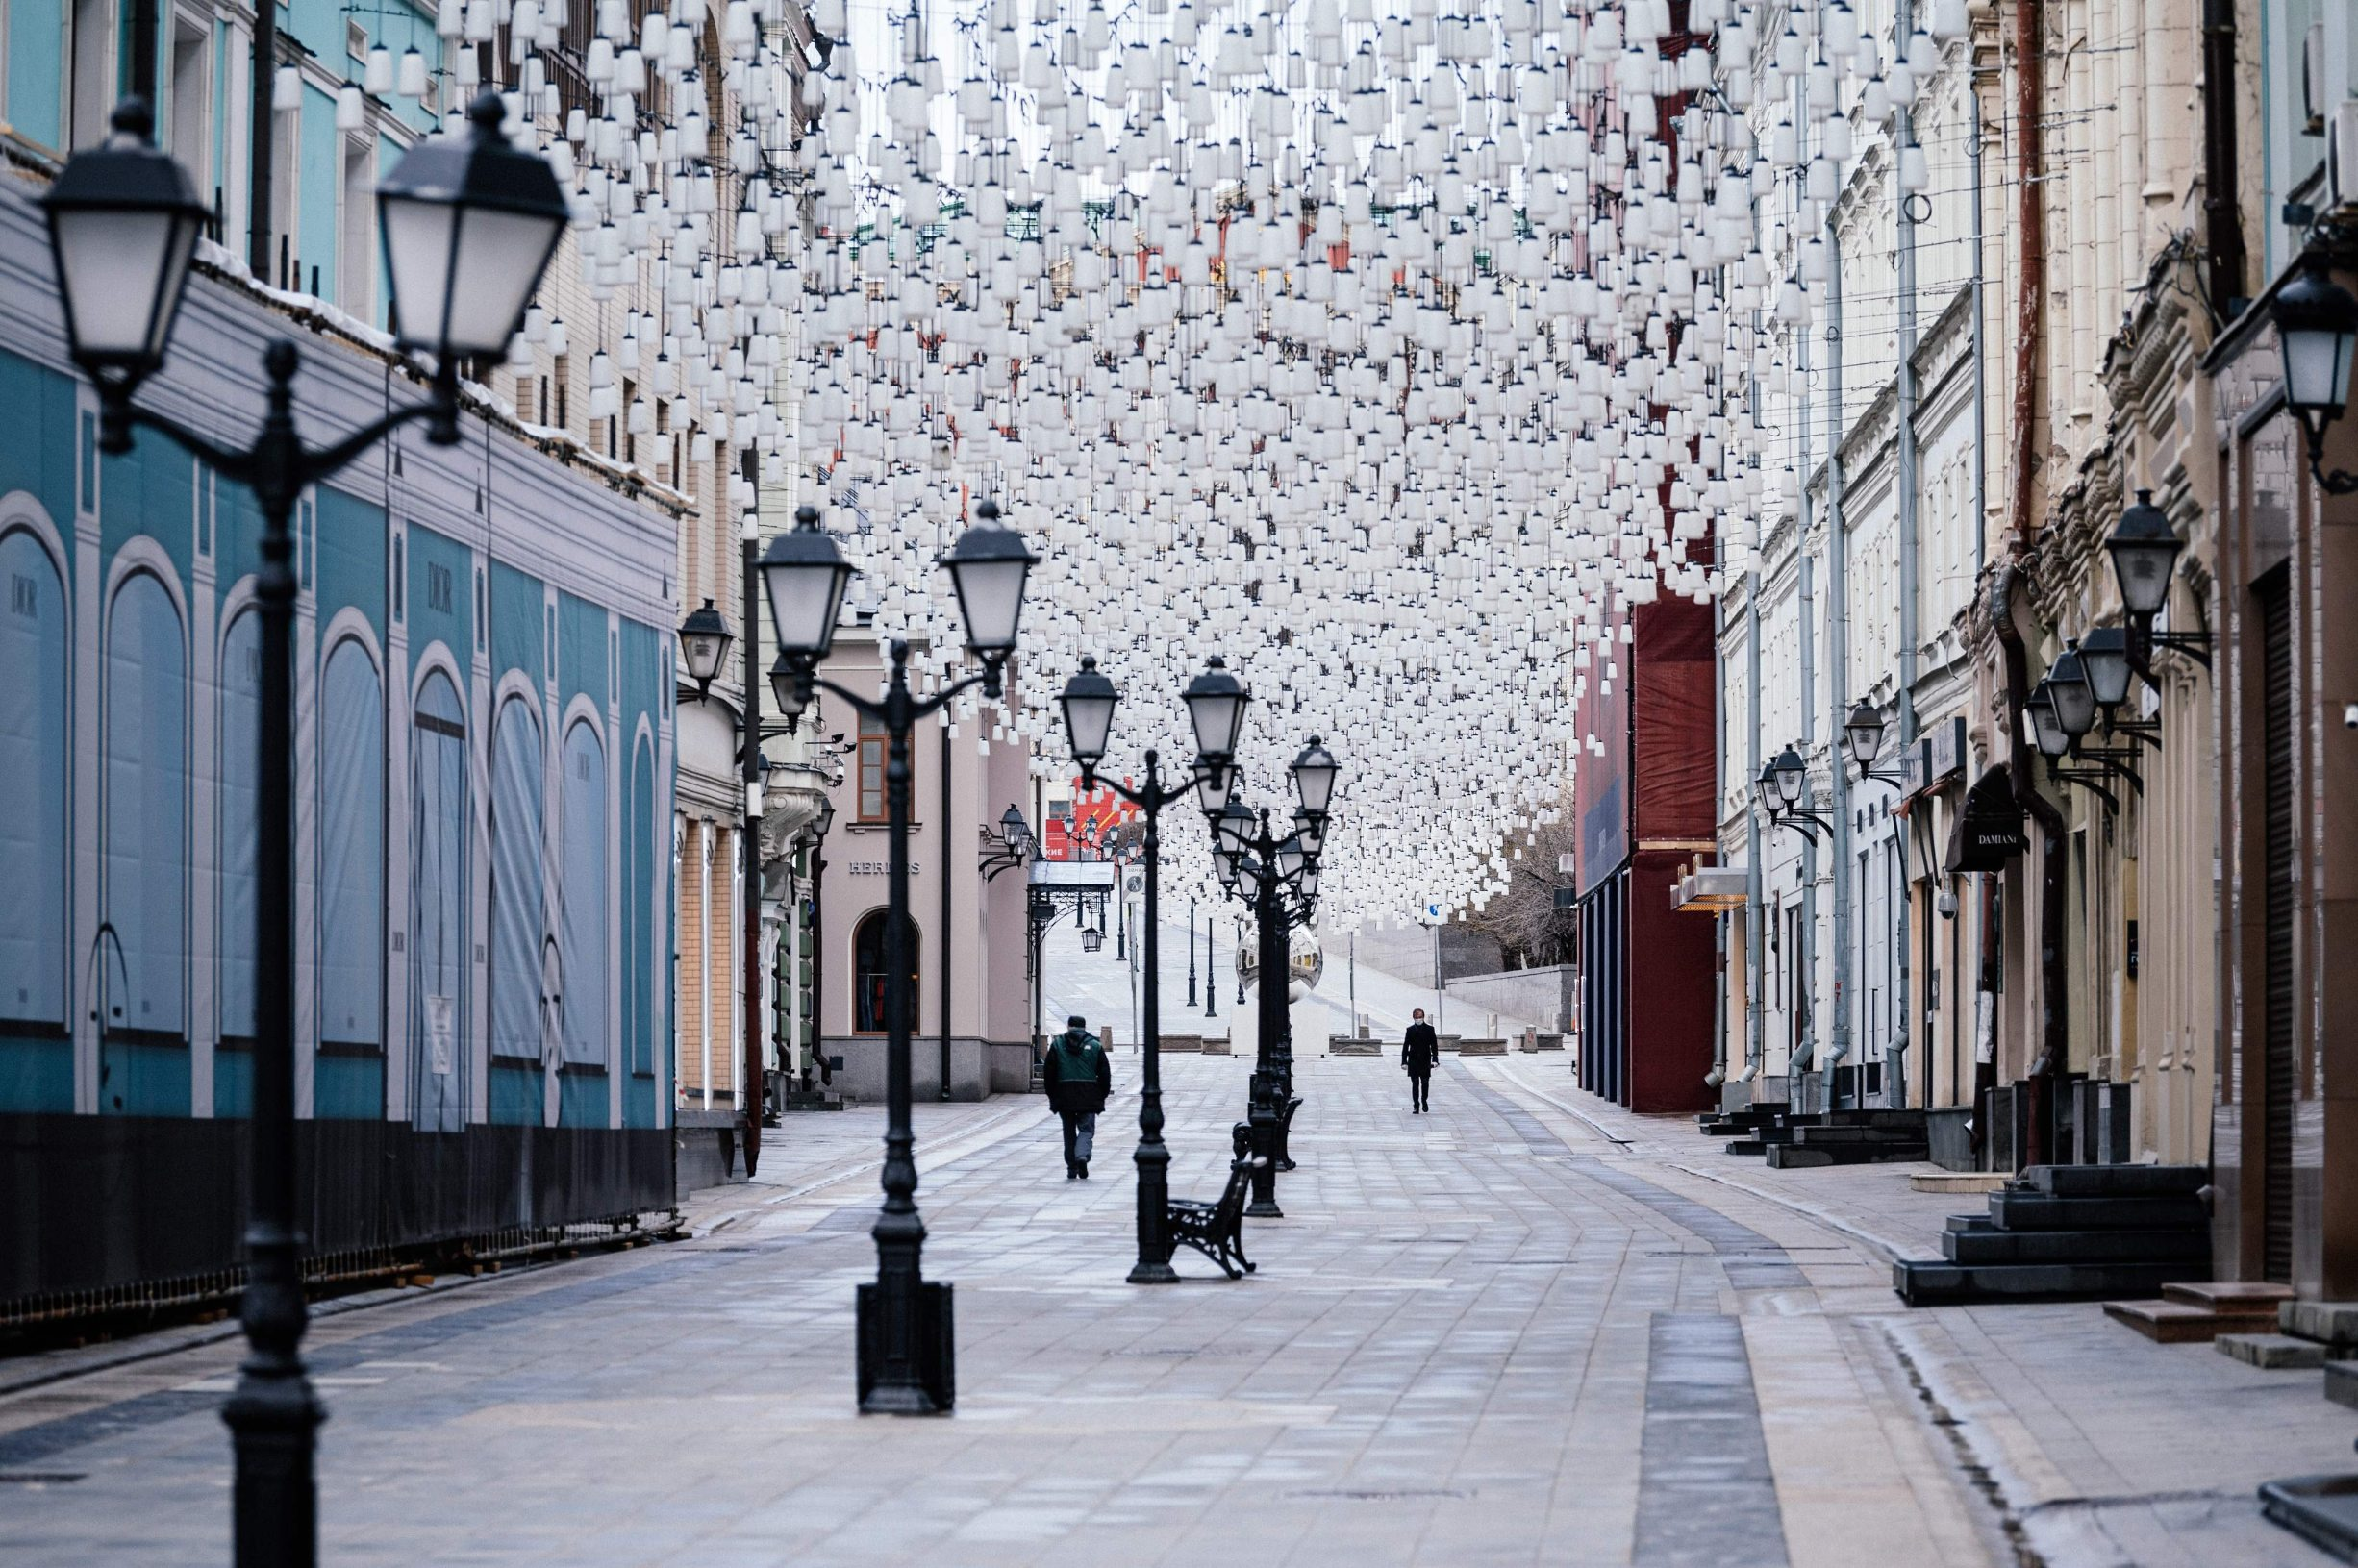 Rare pedestrians walk along Stoleshnikov lane in downtown Moscow on April 16, 2020, during a strict lockdown in Russia to stop the spread of the novel coronavirus COVID-19. (Photo by Dimitar DILKOFF / AFP)